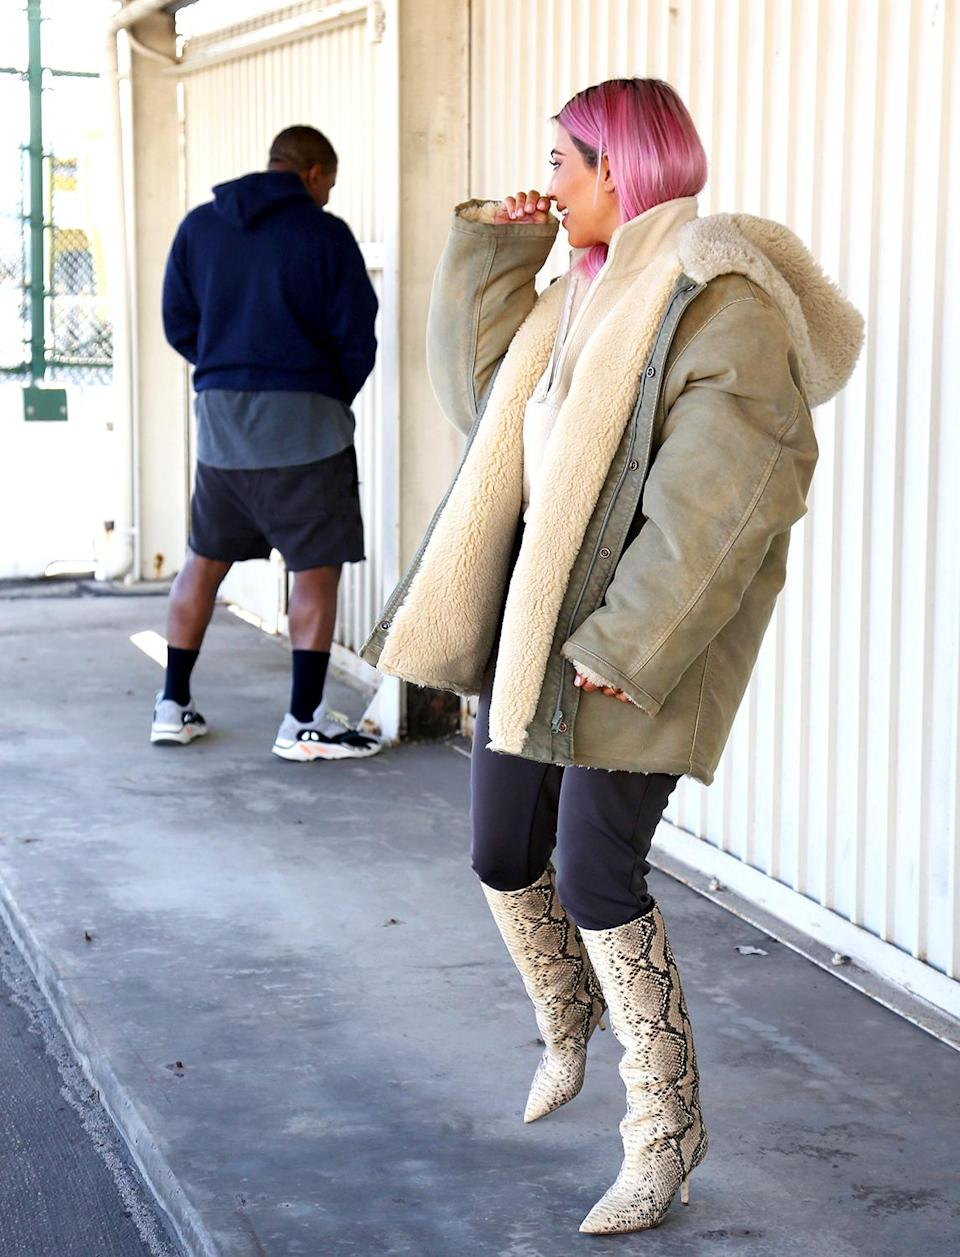 Kim Kardashian, with her new pink locks, cracks up as Kanye West pretends to urinate in front of a photographer in L.A. (Photo:<span> Splash News)</span>